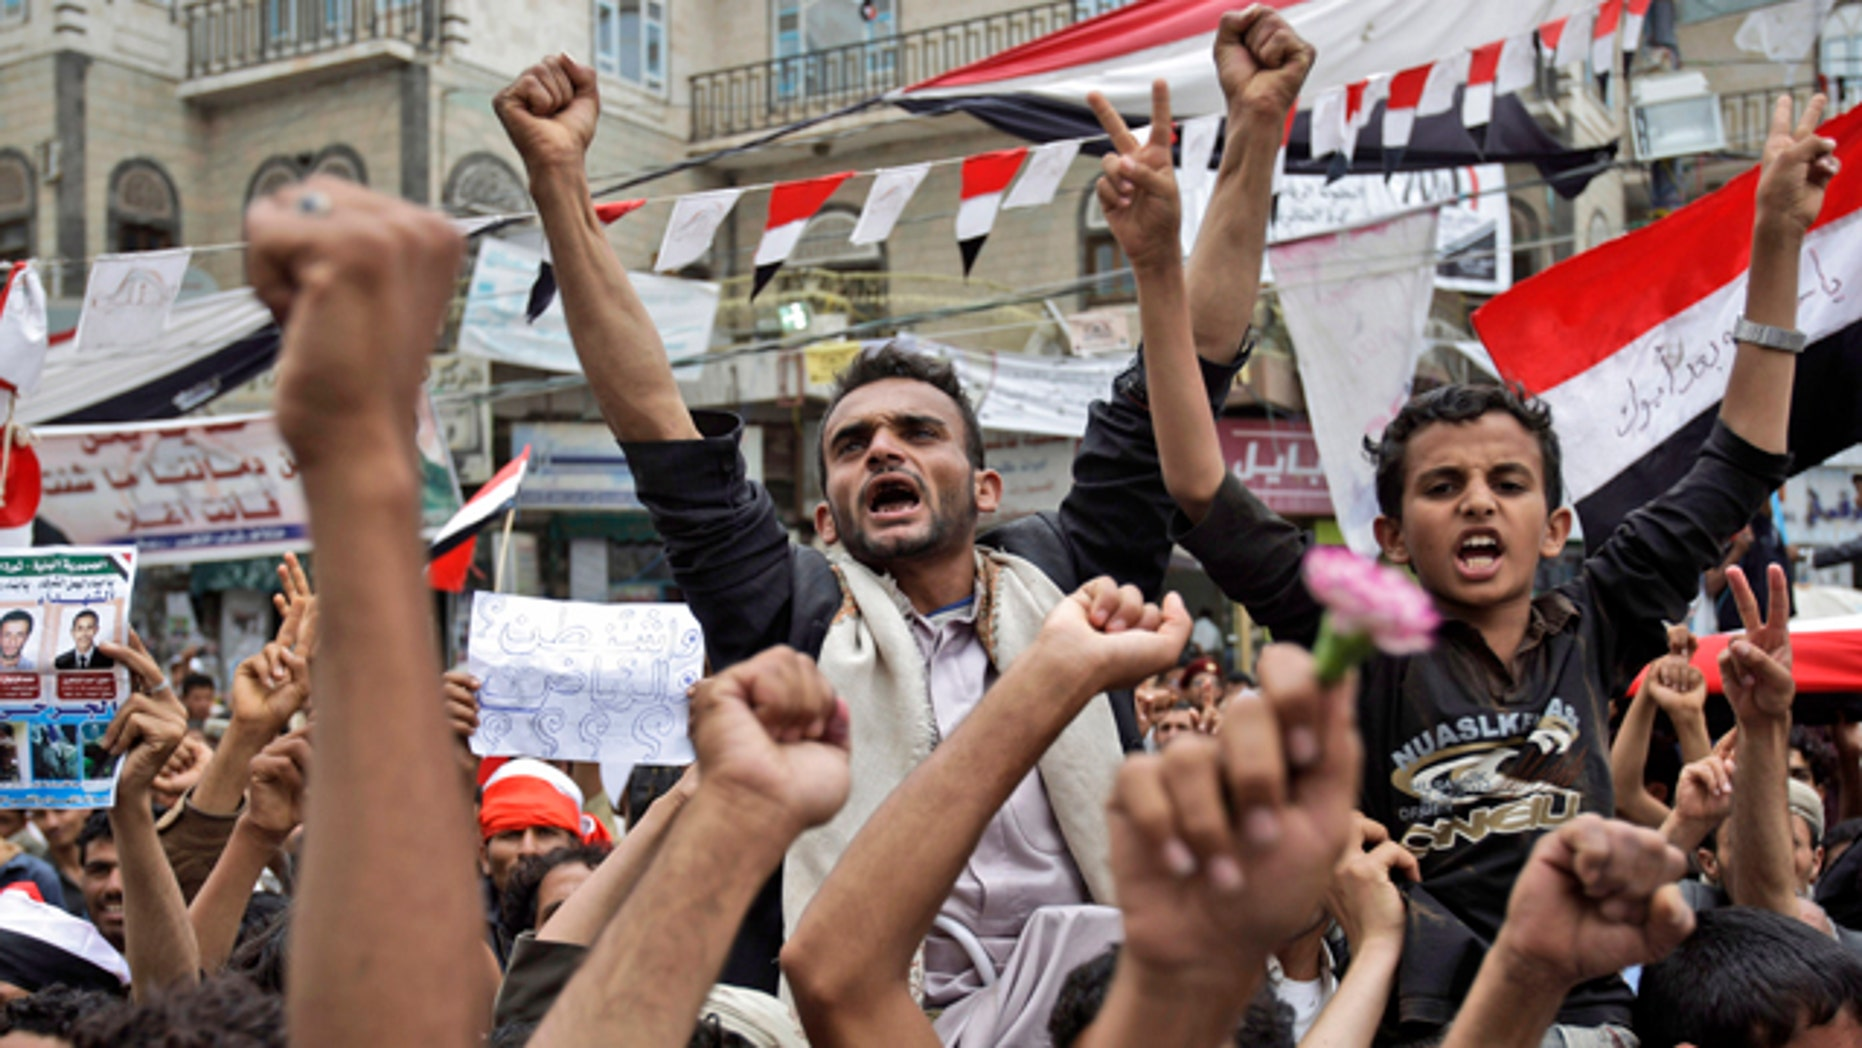 June 15: Anti-government protestors chant slogans during a demonstration demanding the resignation of Yemeni President Ali Abdullah Saleh, in Sanaa, Yemen.